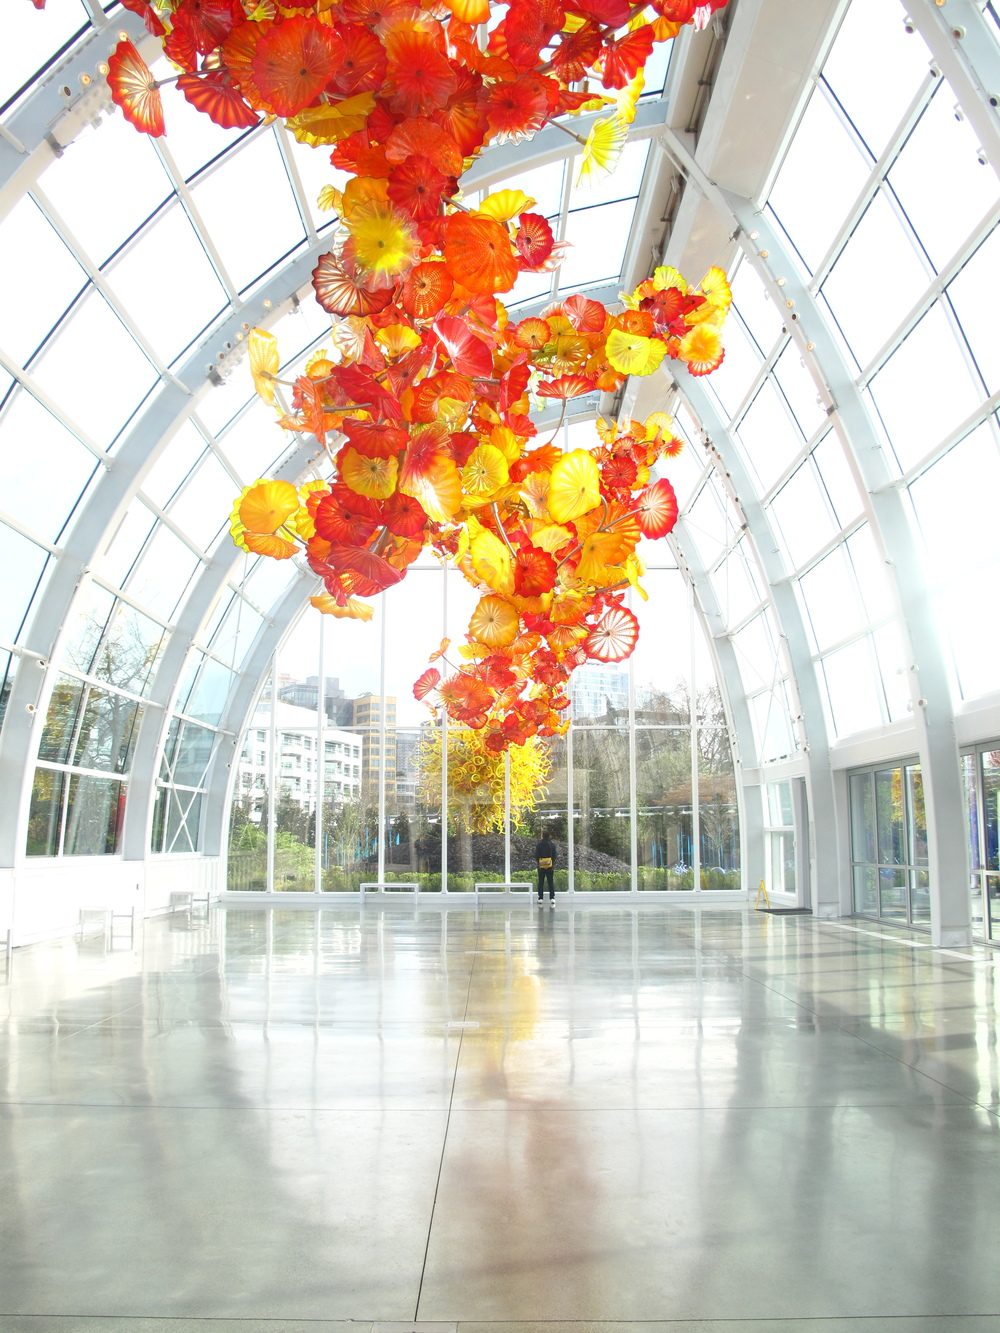 Glass art flowers in the glasshouse at Chihuly Museum.